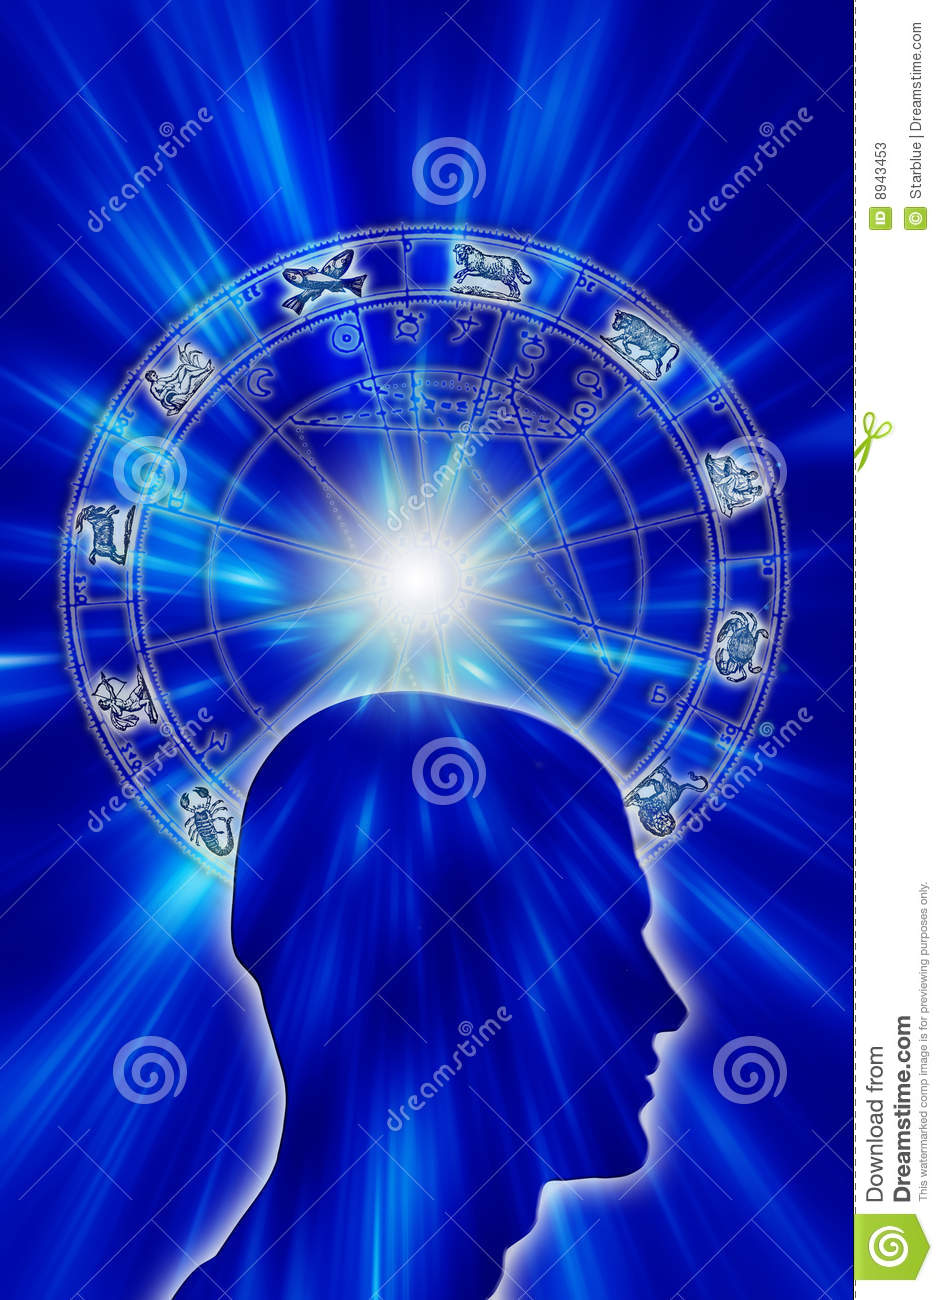 Astrology stock illustration  Illustration of soul, magical